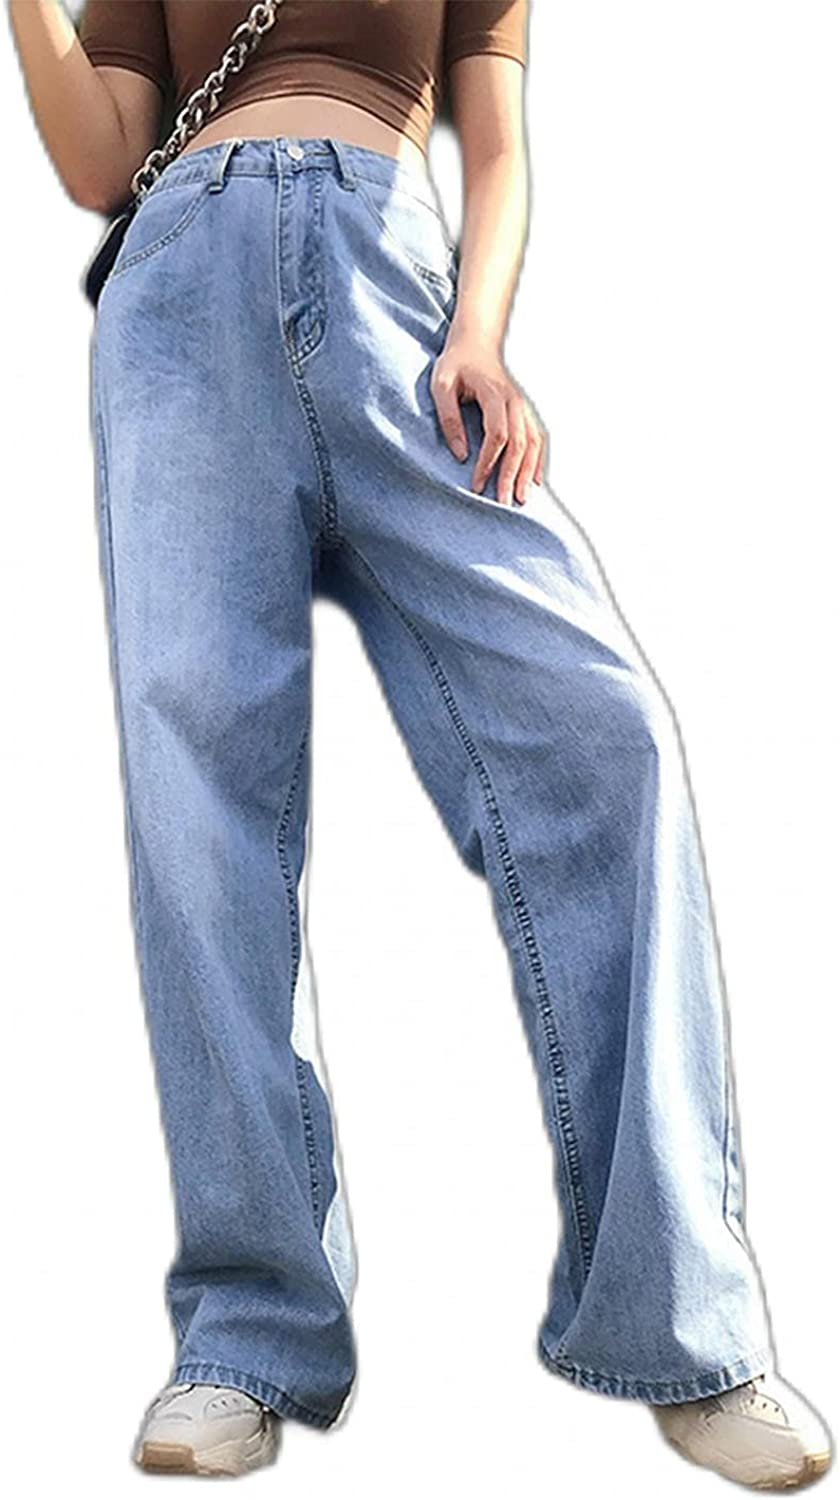 Dunacifa Women's High Waisted Flared Jeans Slim Retro Style Bell Bottom Jean Trousers Flaress Classic Fitted Denim Pants